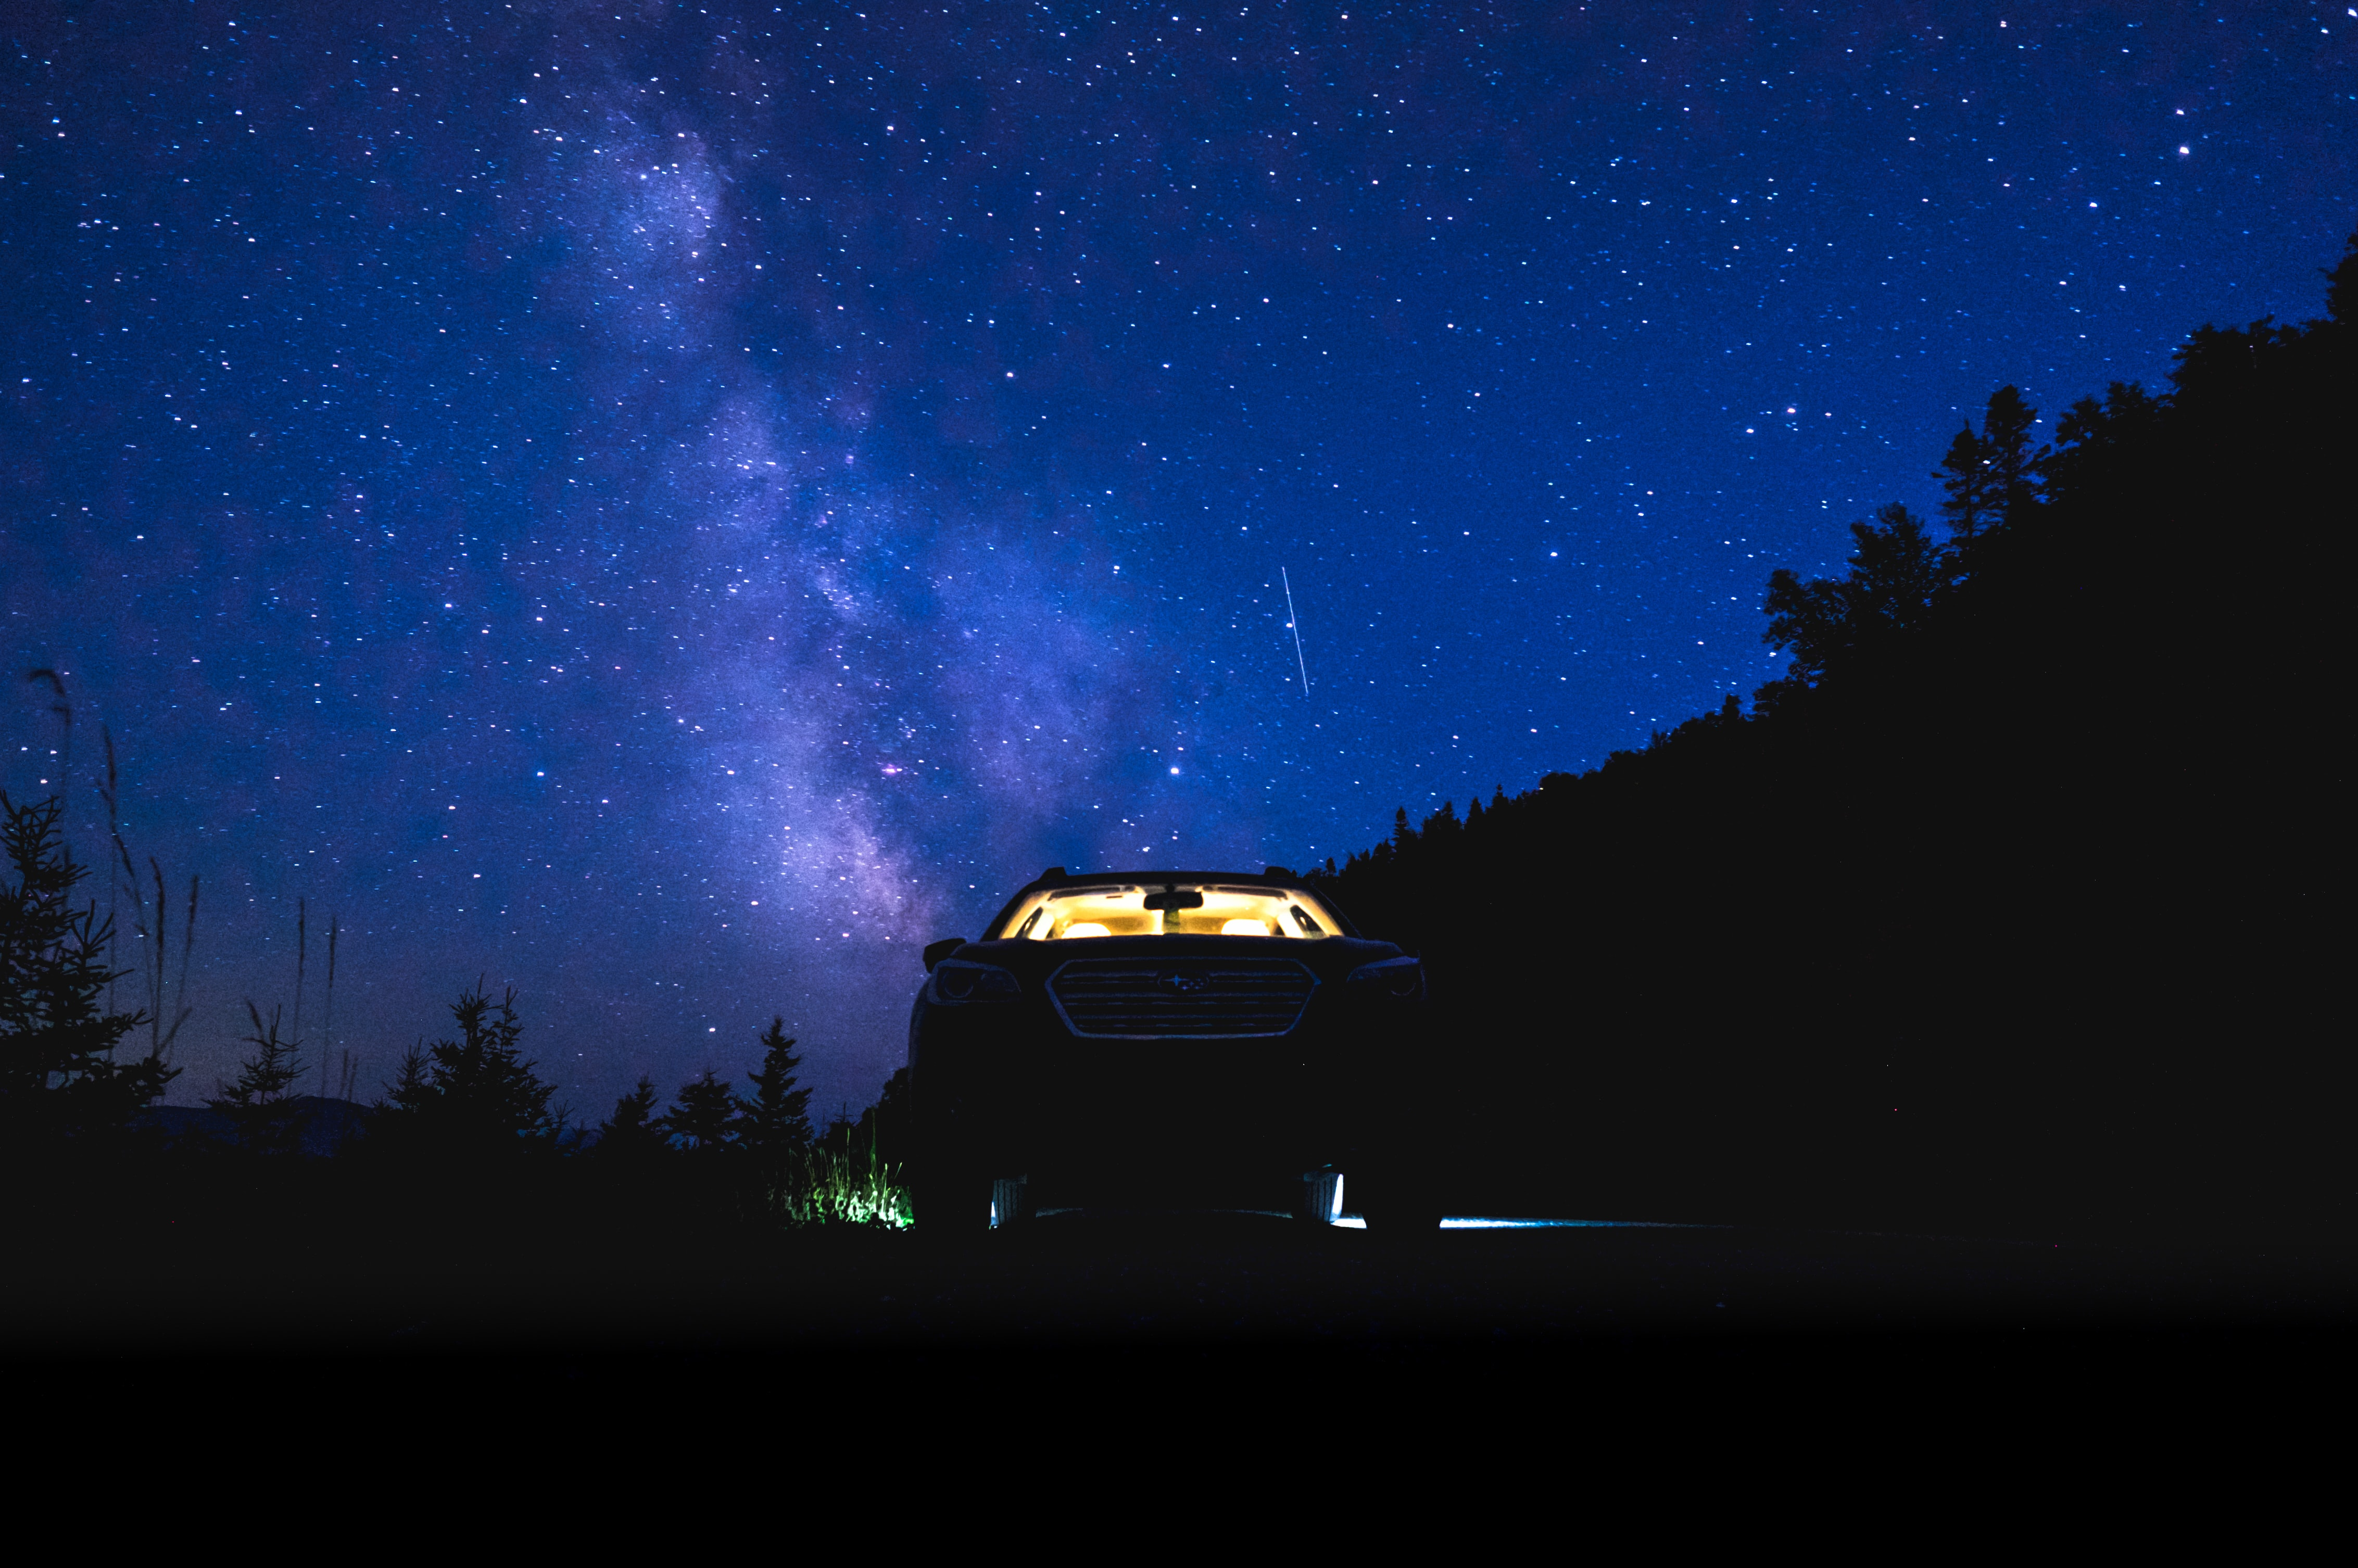 car parked in forest under starry sky